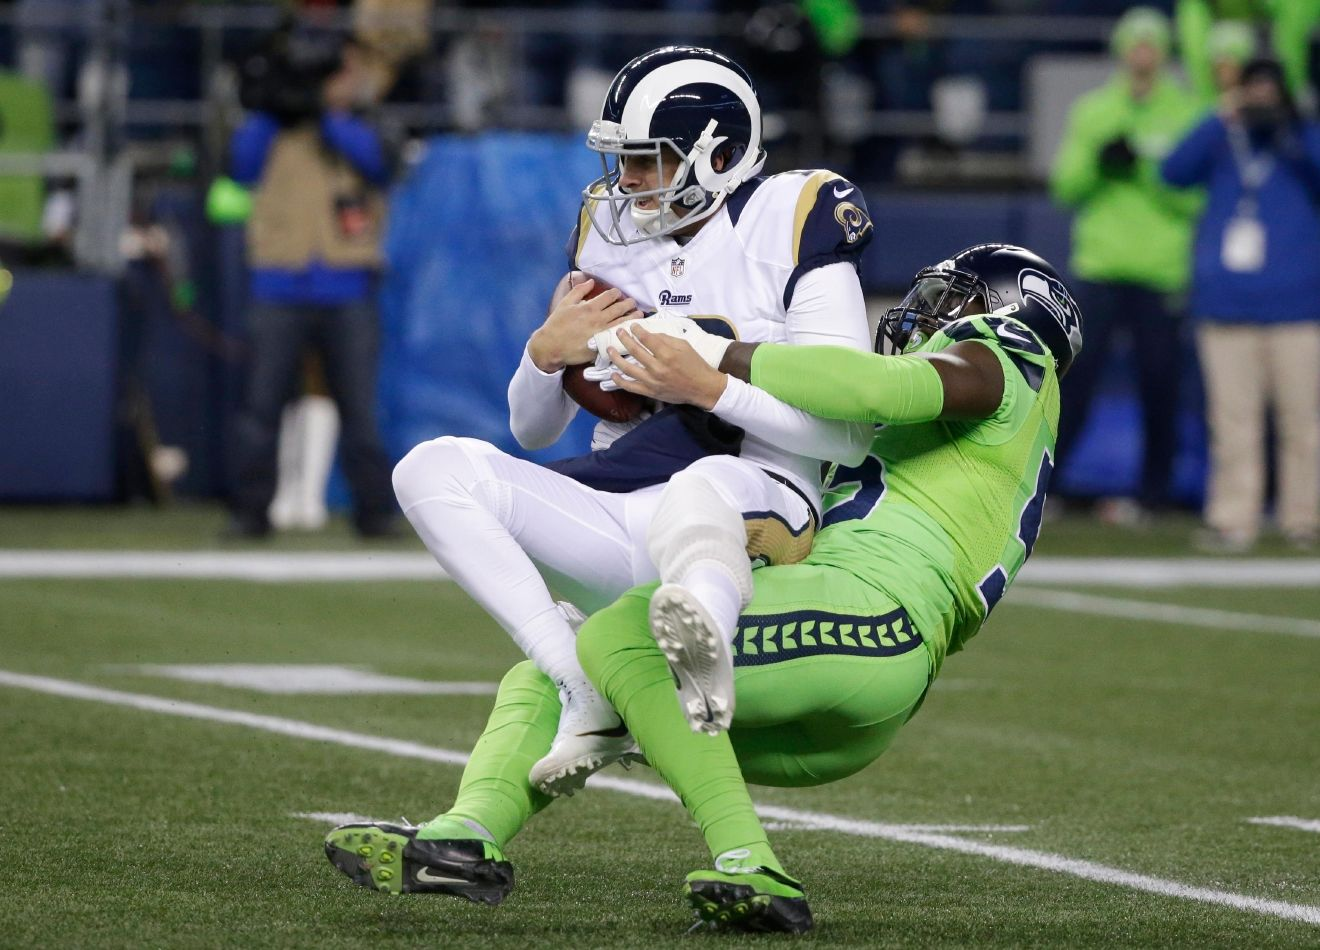 Los Angeles Rams quarterback Jared Goff is sacked by Seattle Seahawks defensive end Frank Clark in the first half of an NFL football game, Thursday, Dec. 15, 2016, in Seattle. (AP Photo/Elaine Thompson)